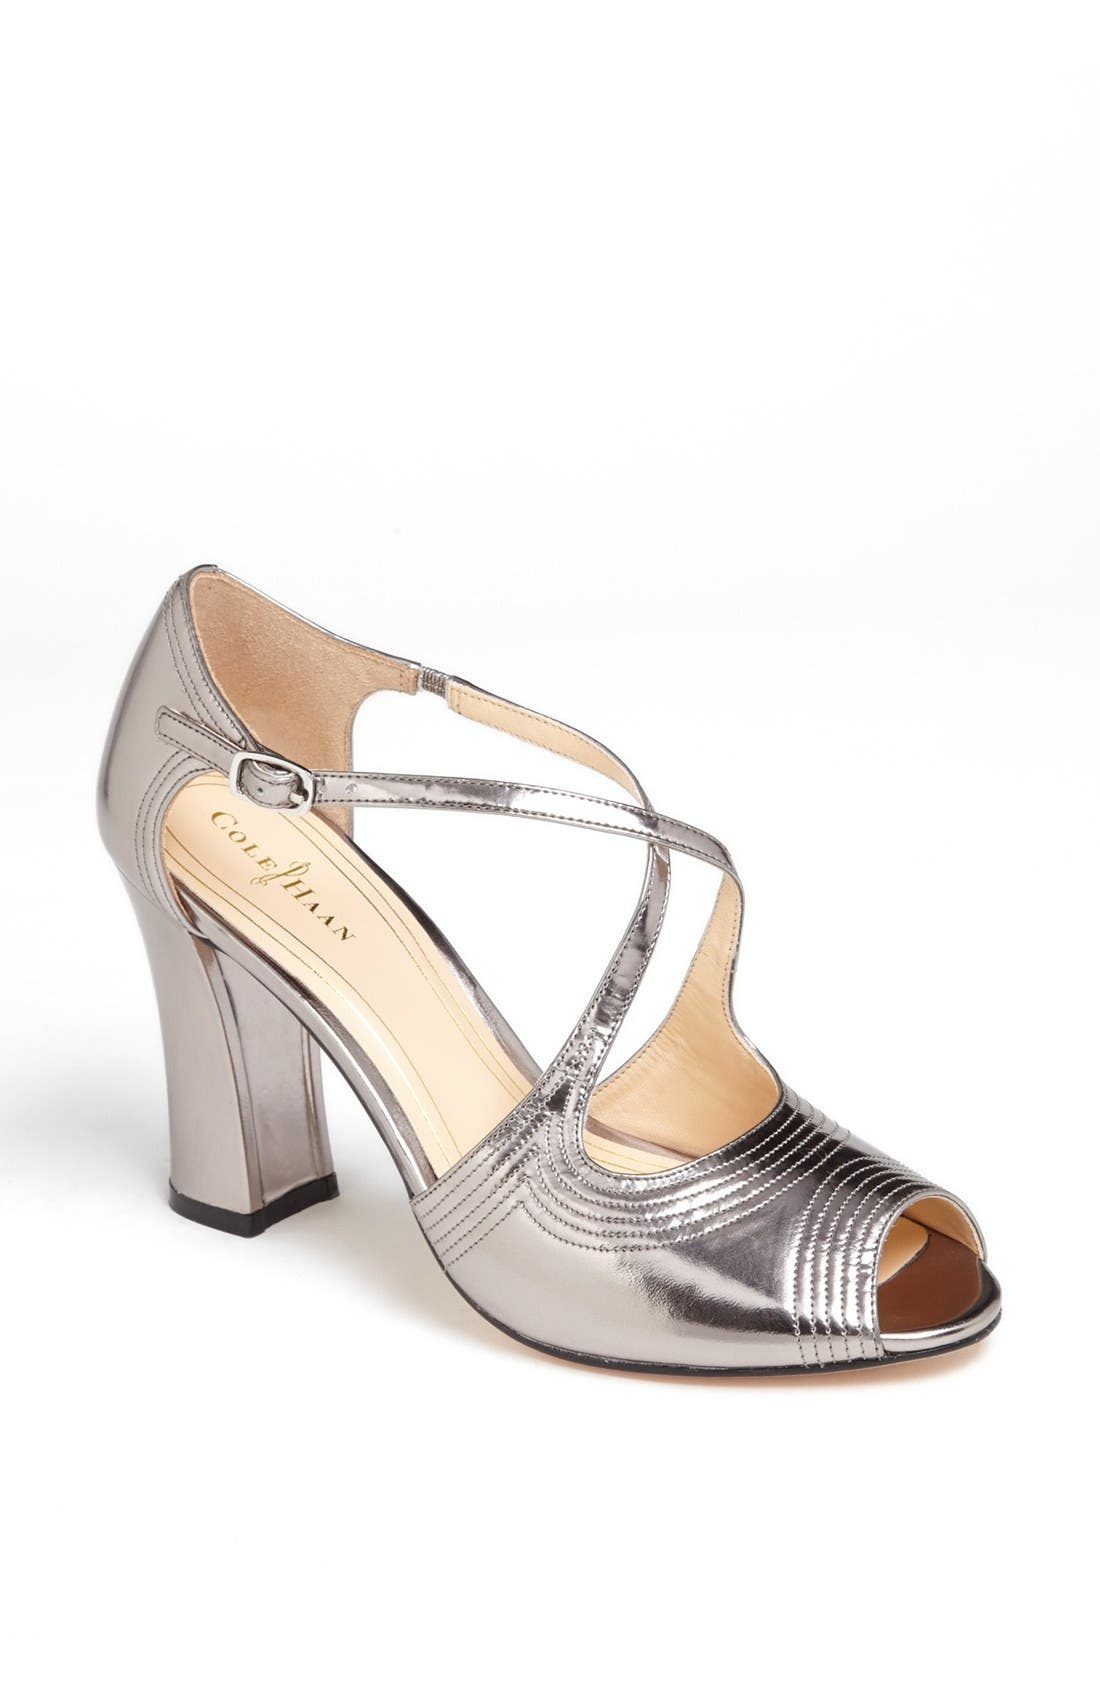 Alternate Image 1 Selected - Cole Haan 'Jovie' Mirrored Sandal